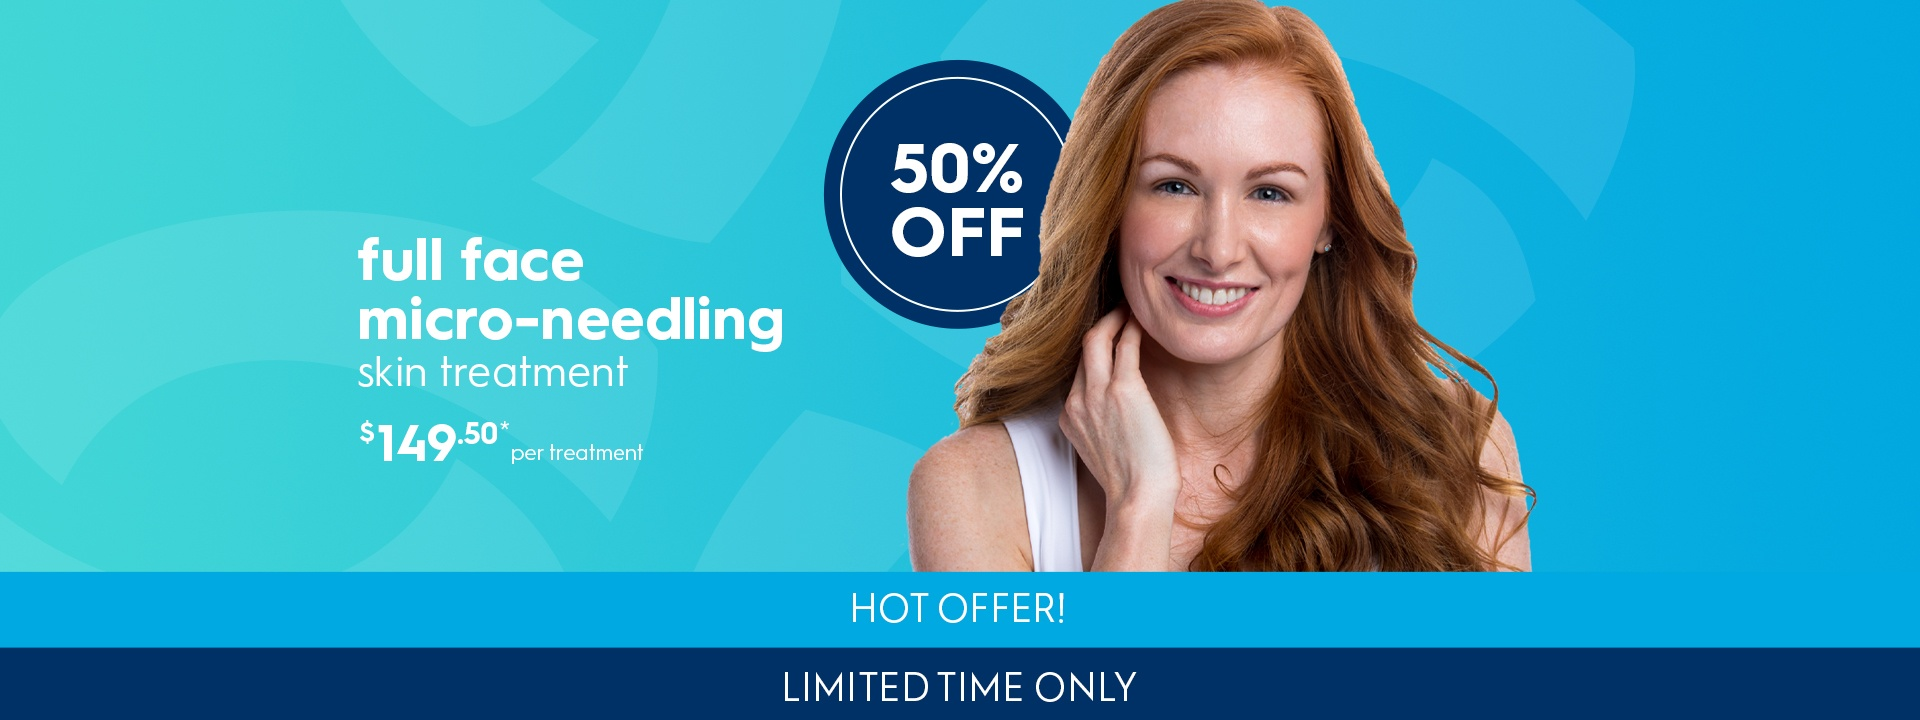 Hot Offer - Full Face Micro-Needling